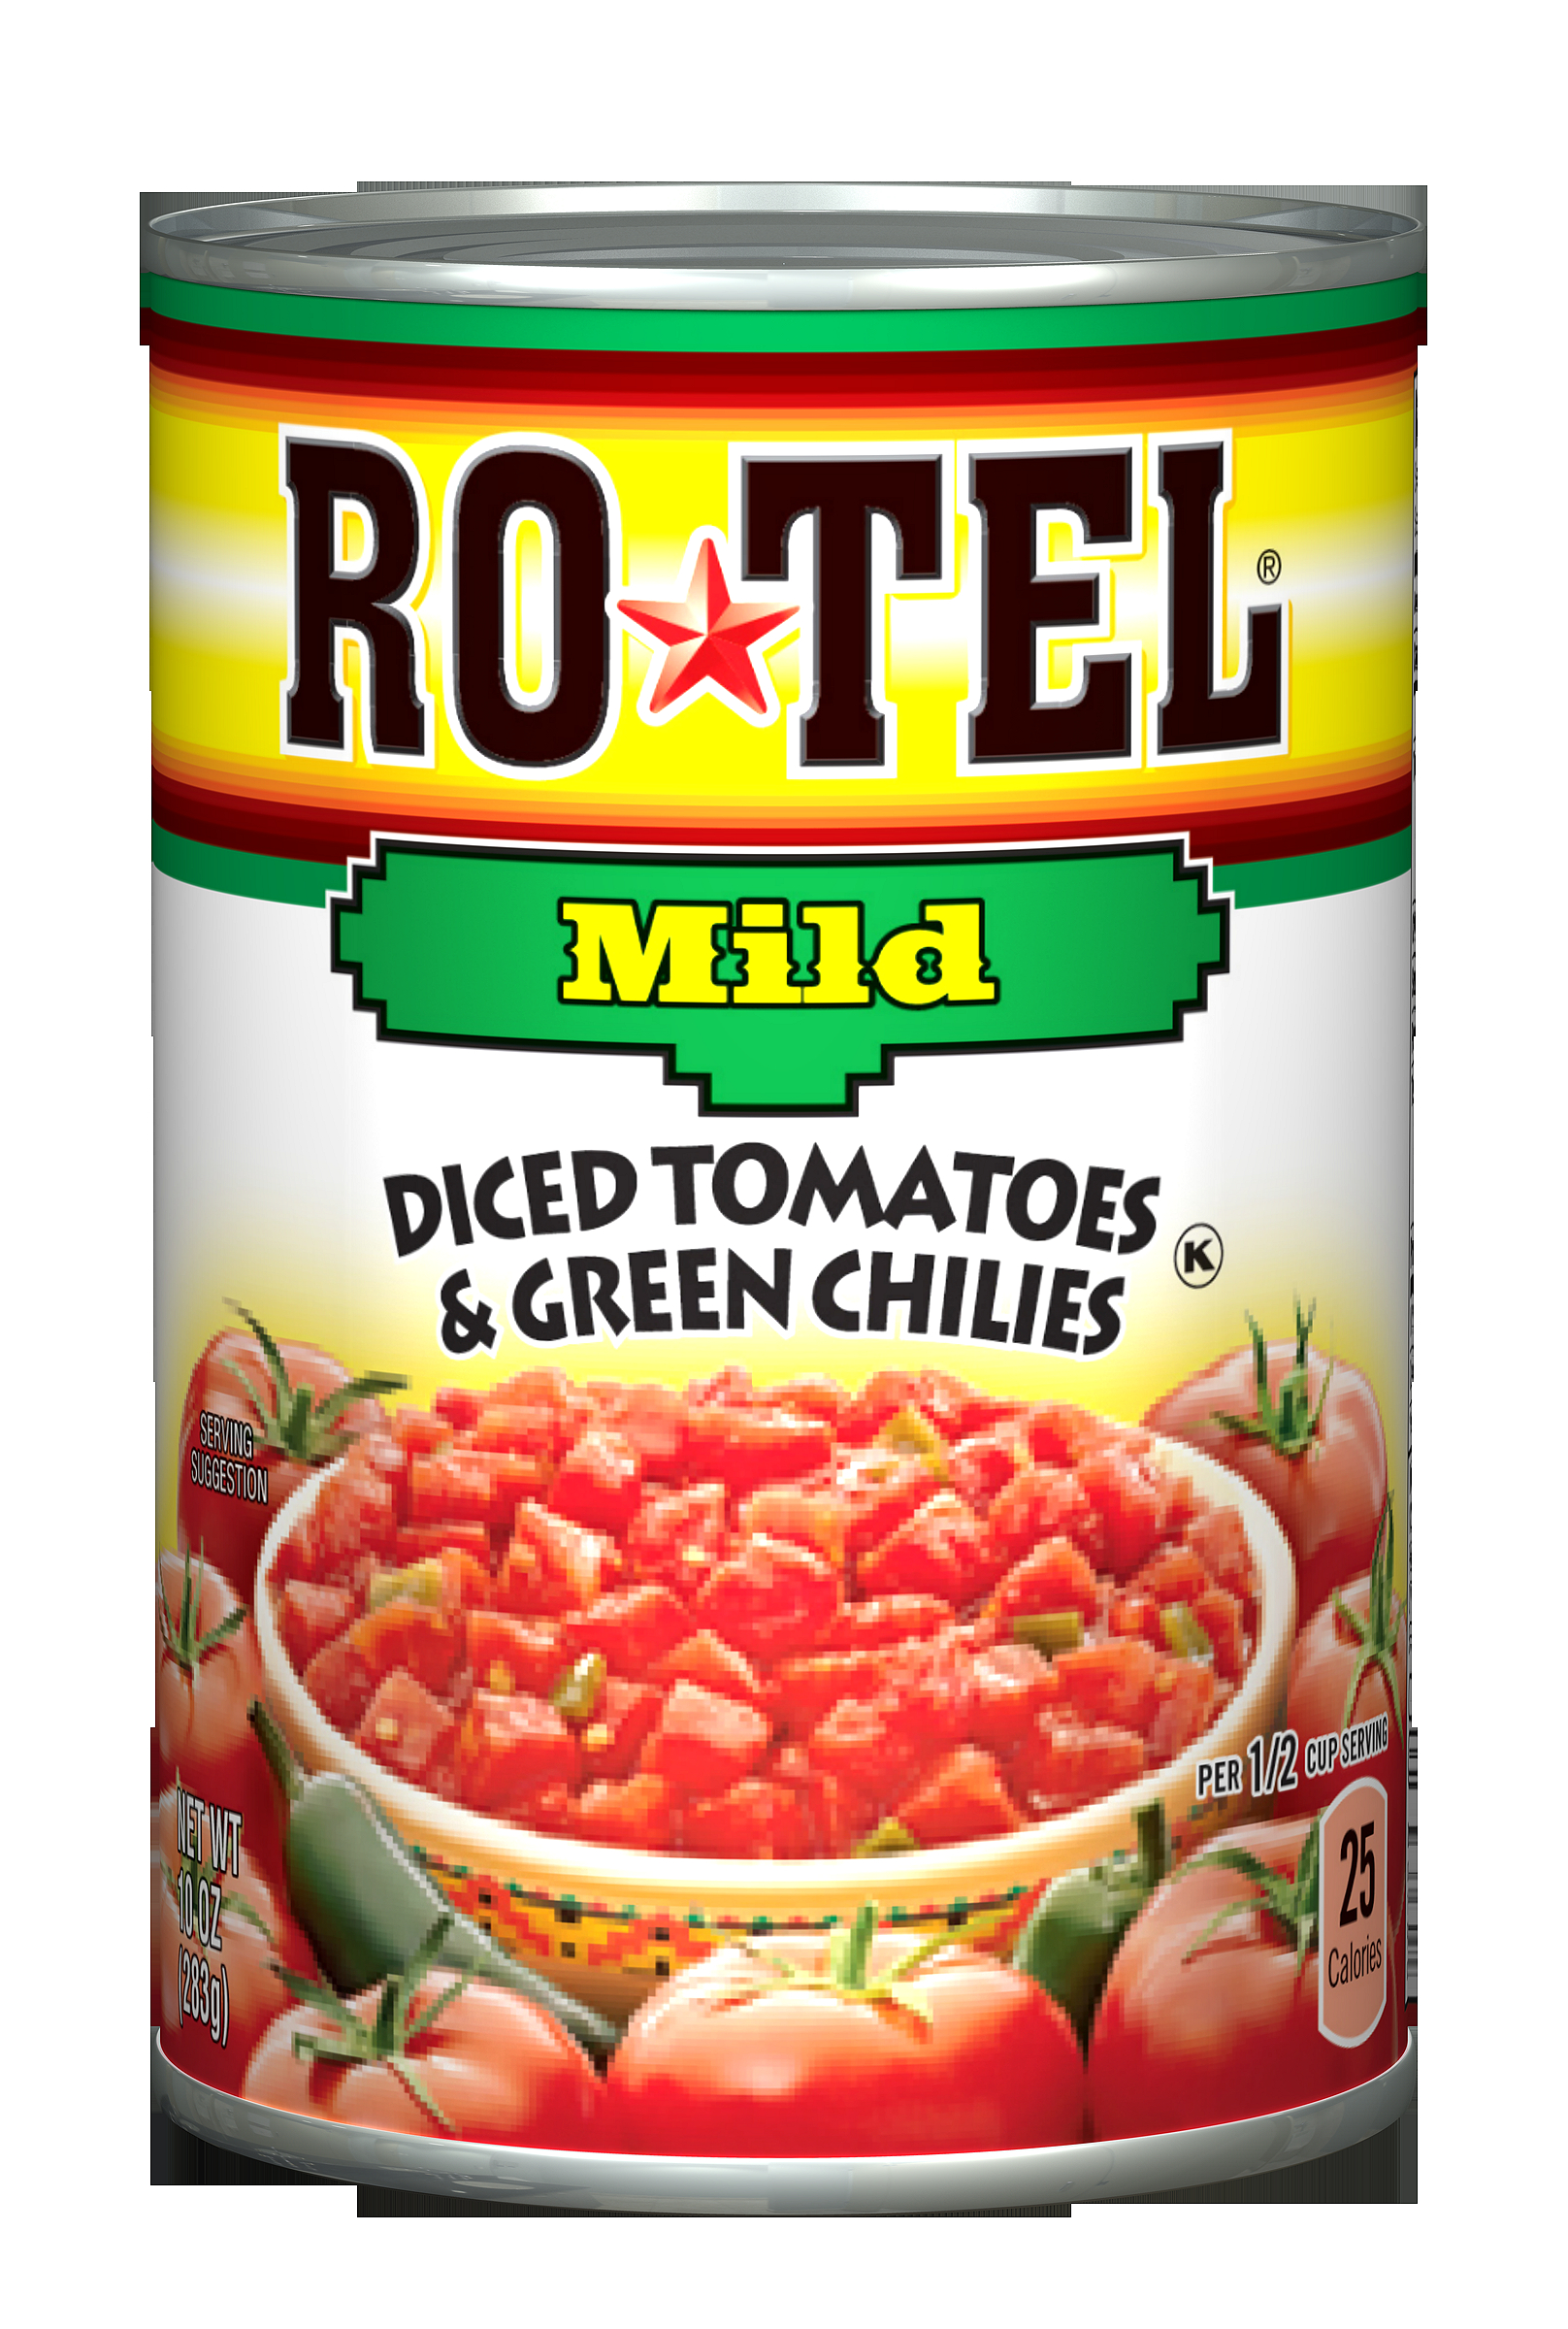 Ro*Tel Mild Diced Tomatoes & Green Chilies, 10 Oz by Conagra Brands